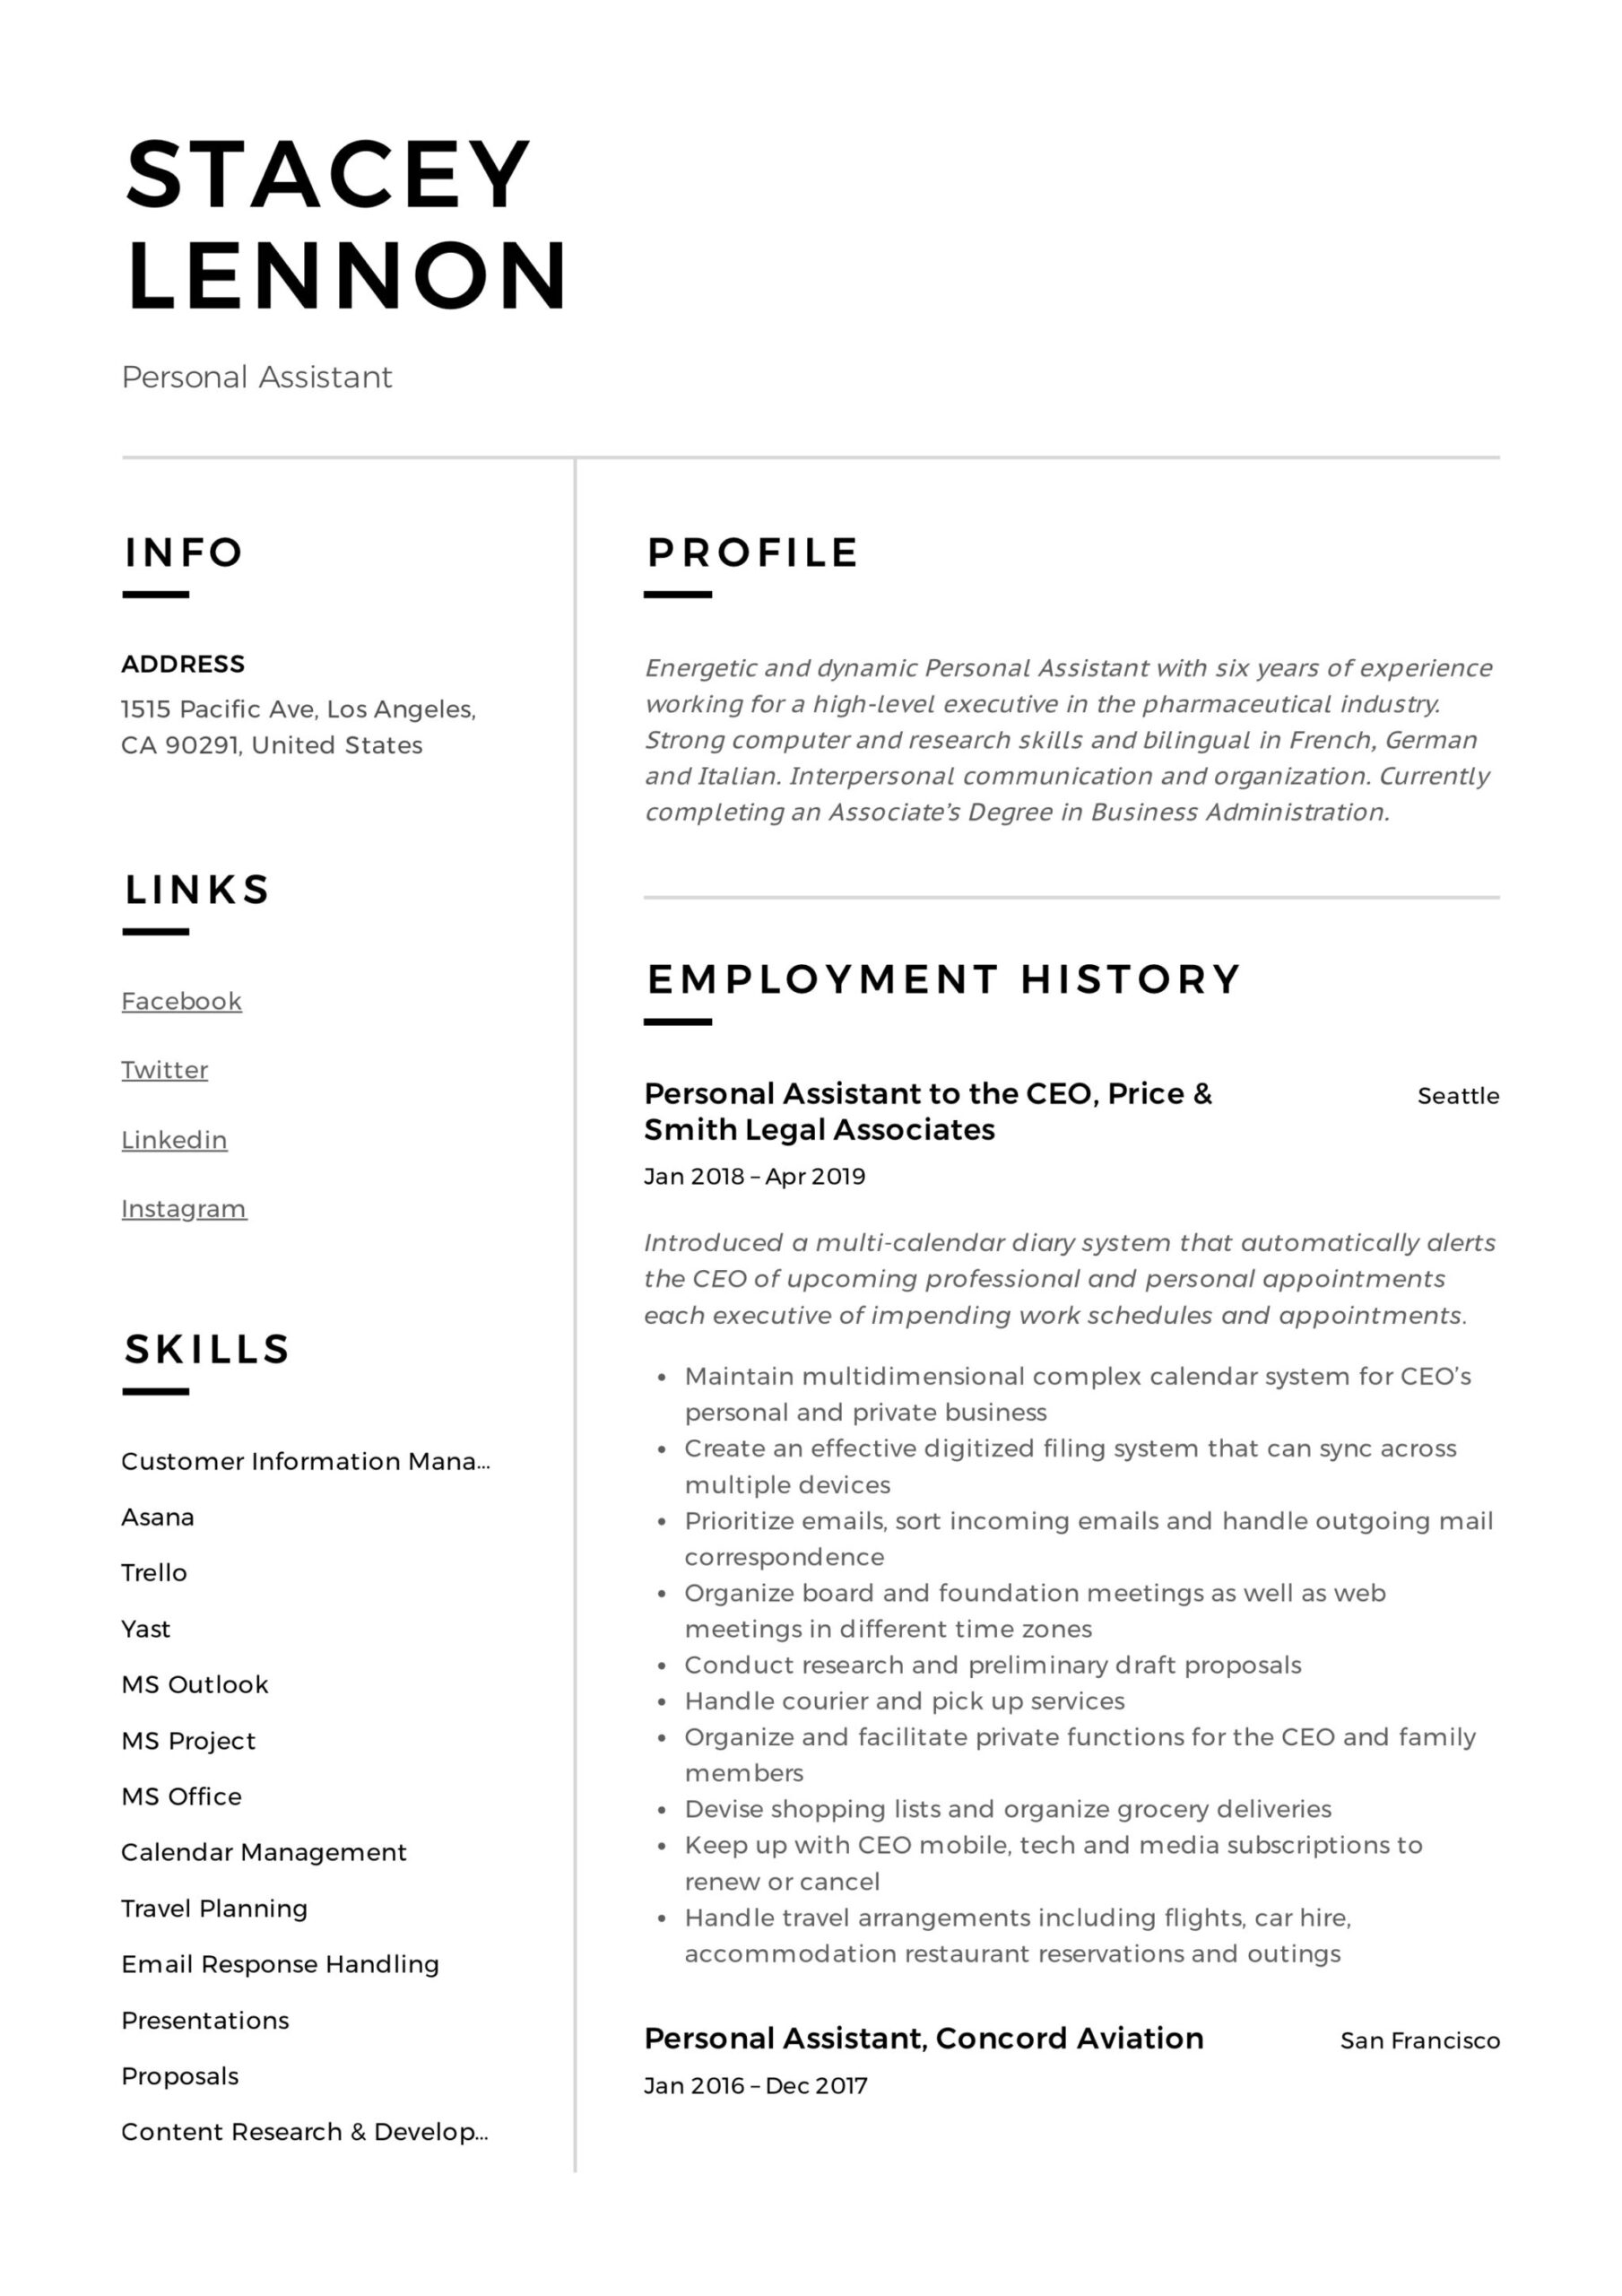 personal assistant resume writing guide templates pdf best projectionist leadership Resume Best Personal Assistant Resume